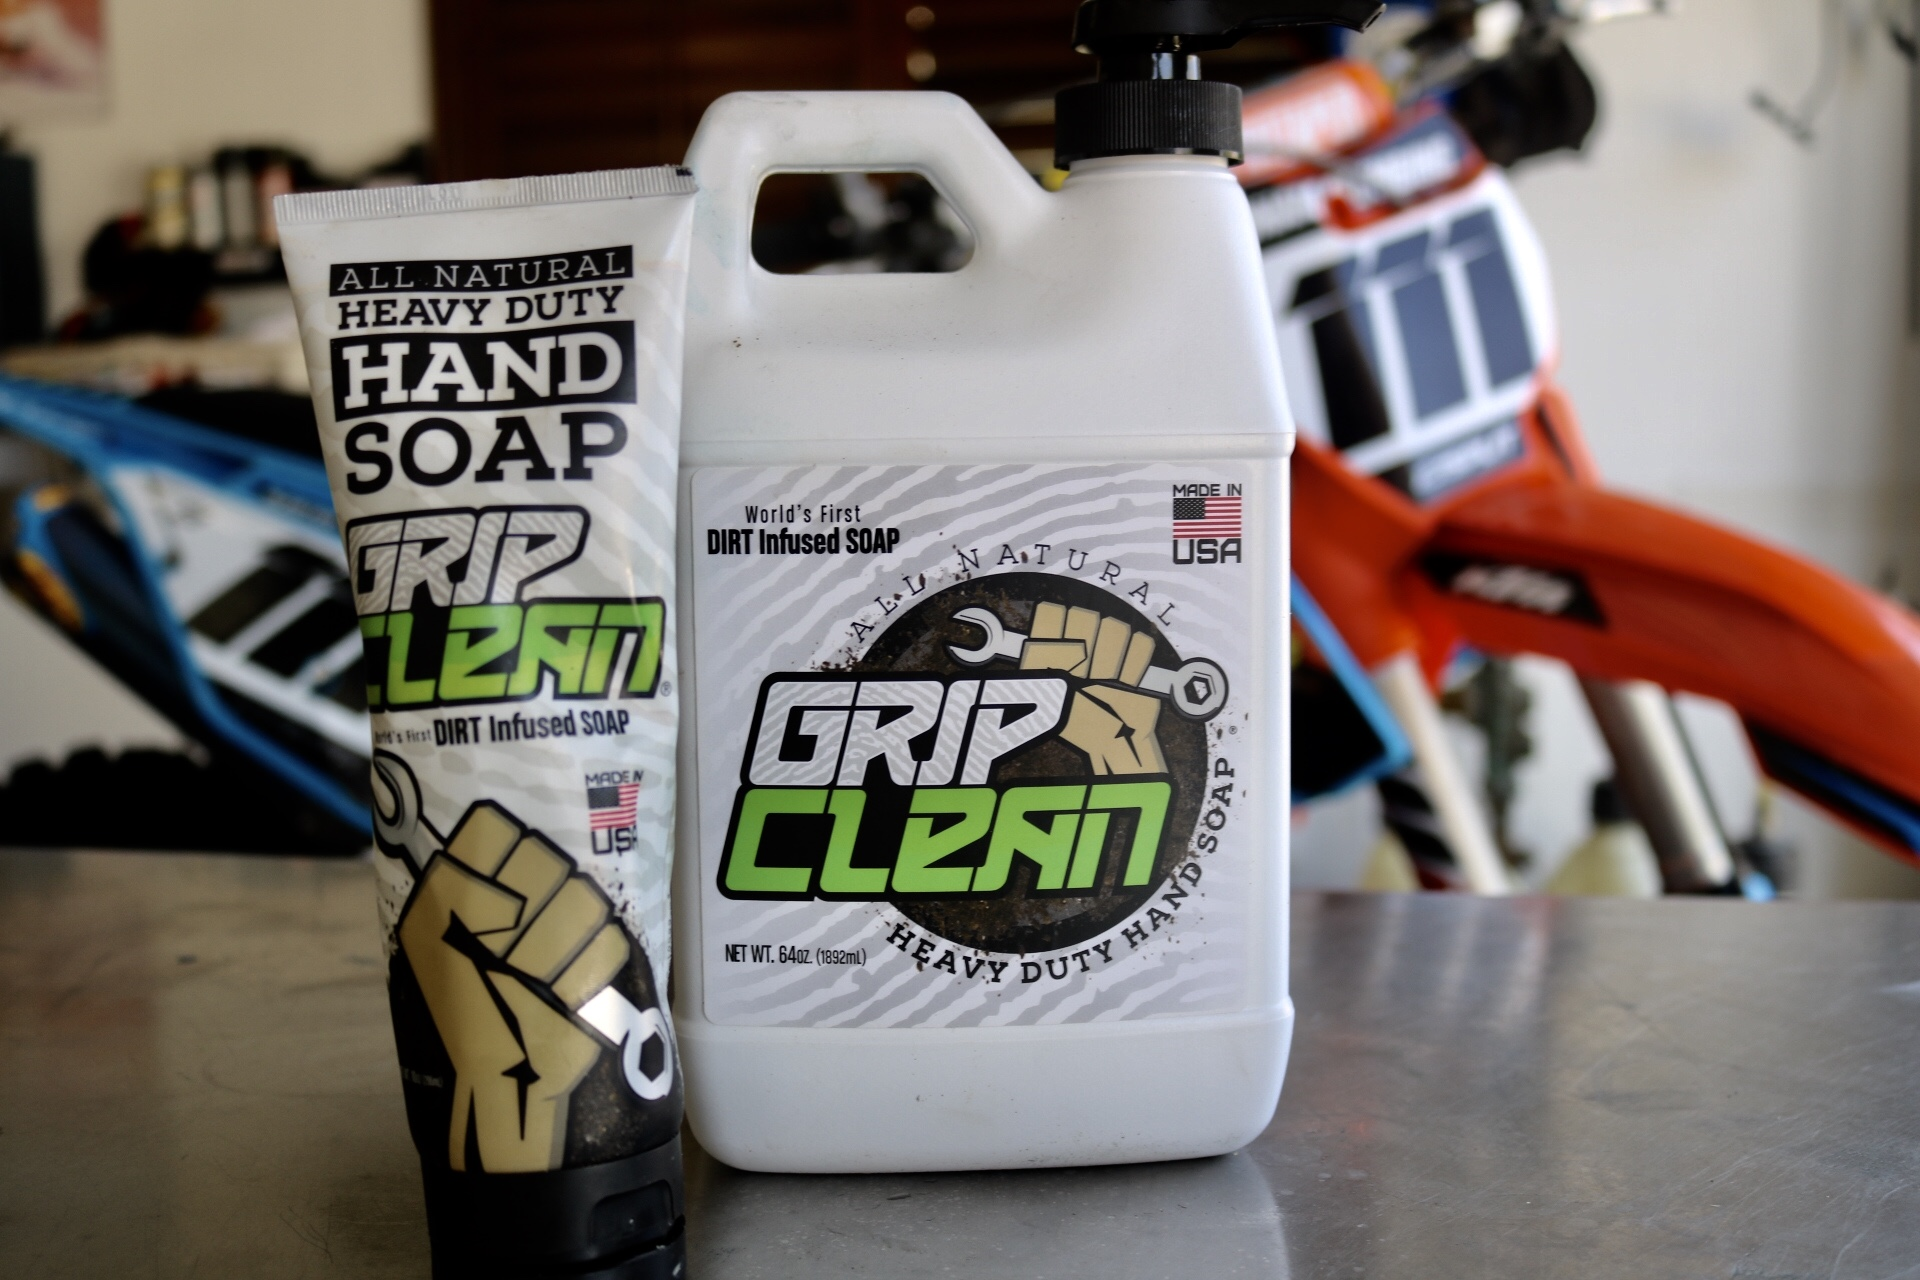 Grip Clean comes in two convient sizs